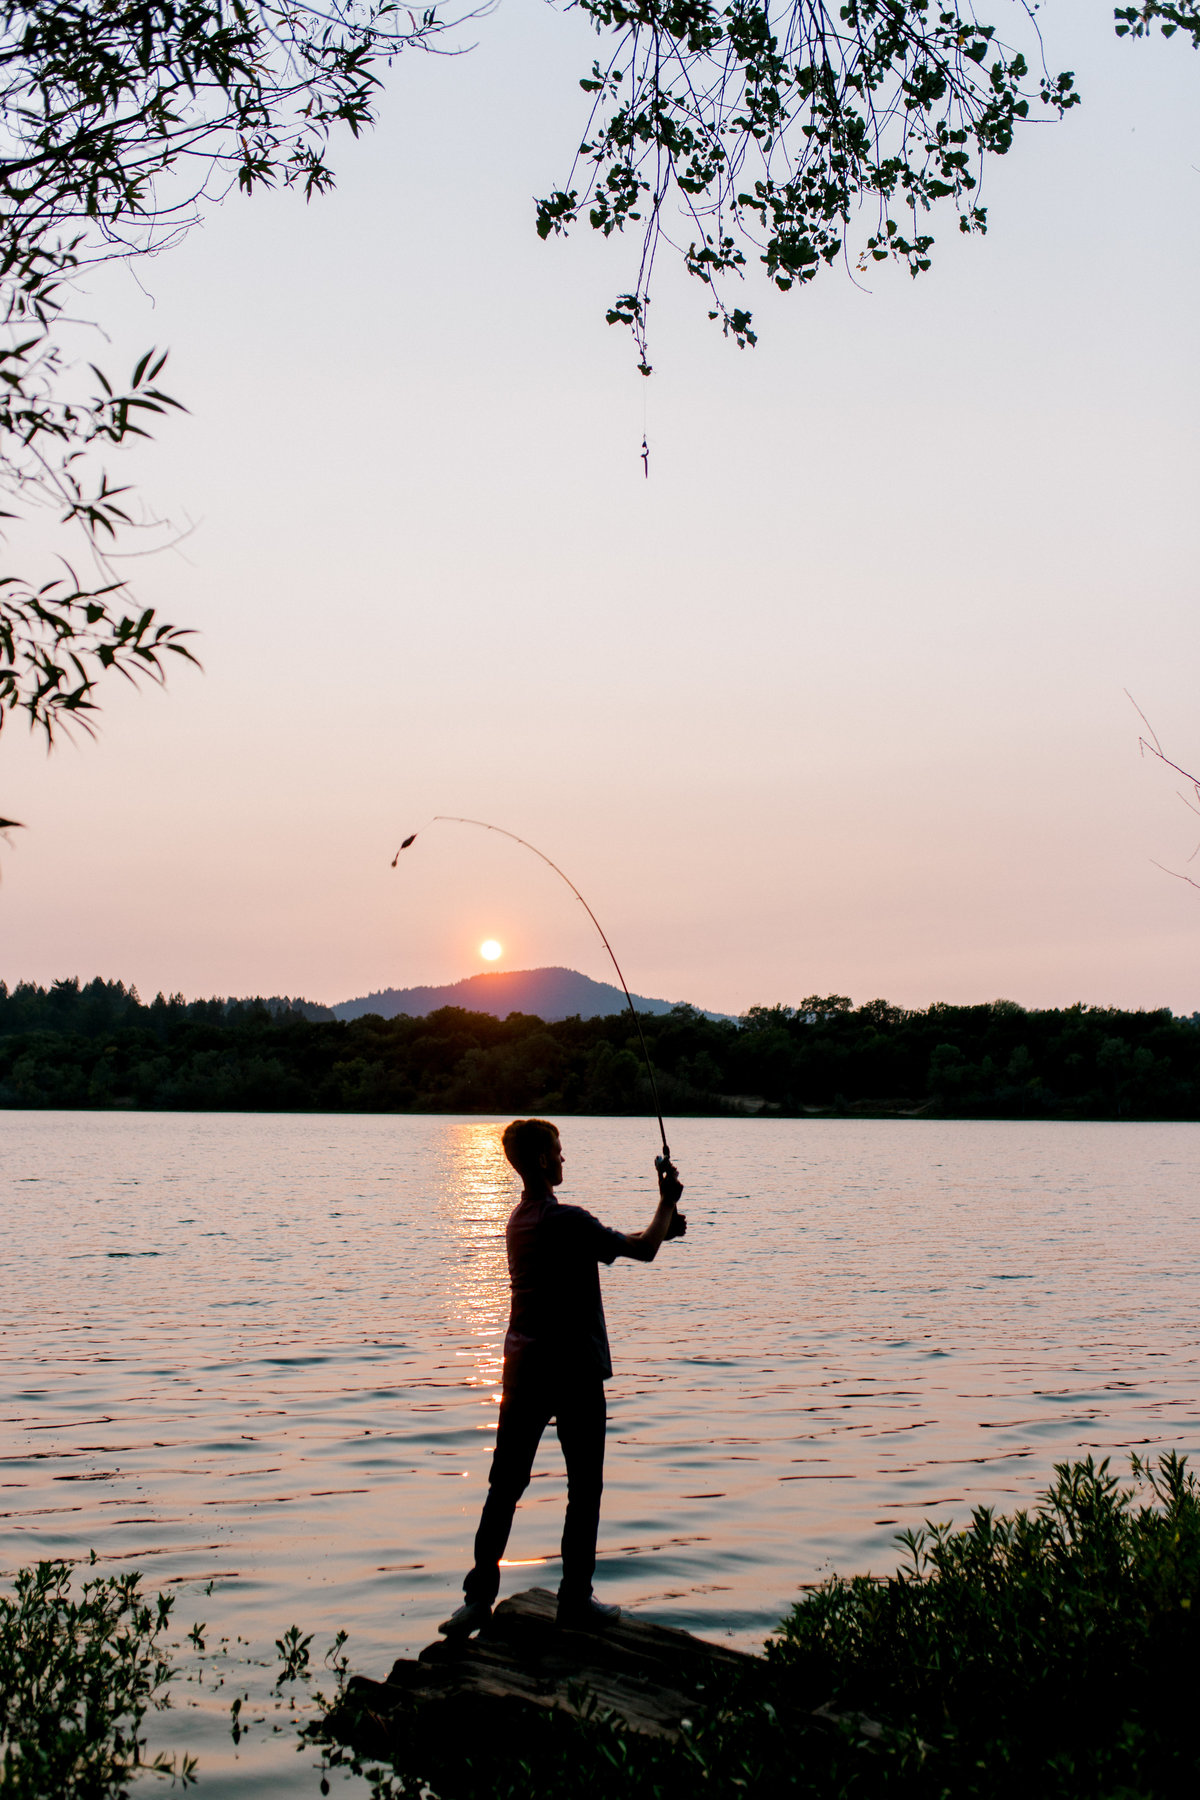 senior guy fishing in lake at sunset